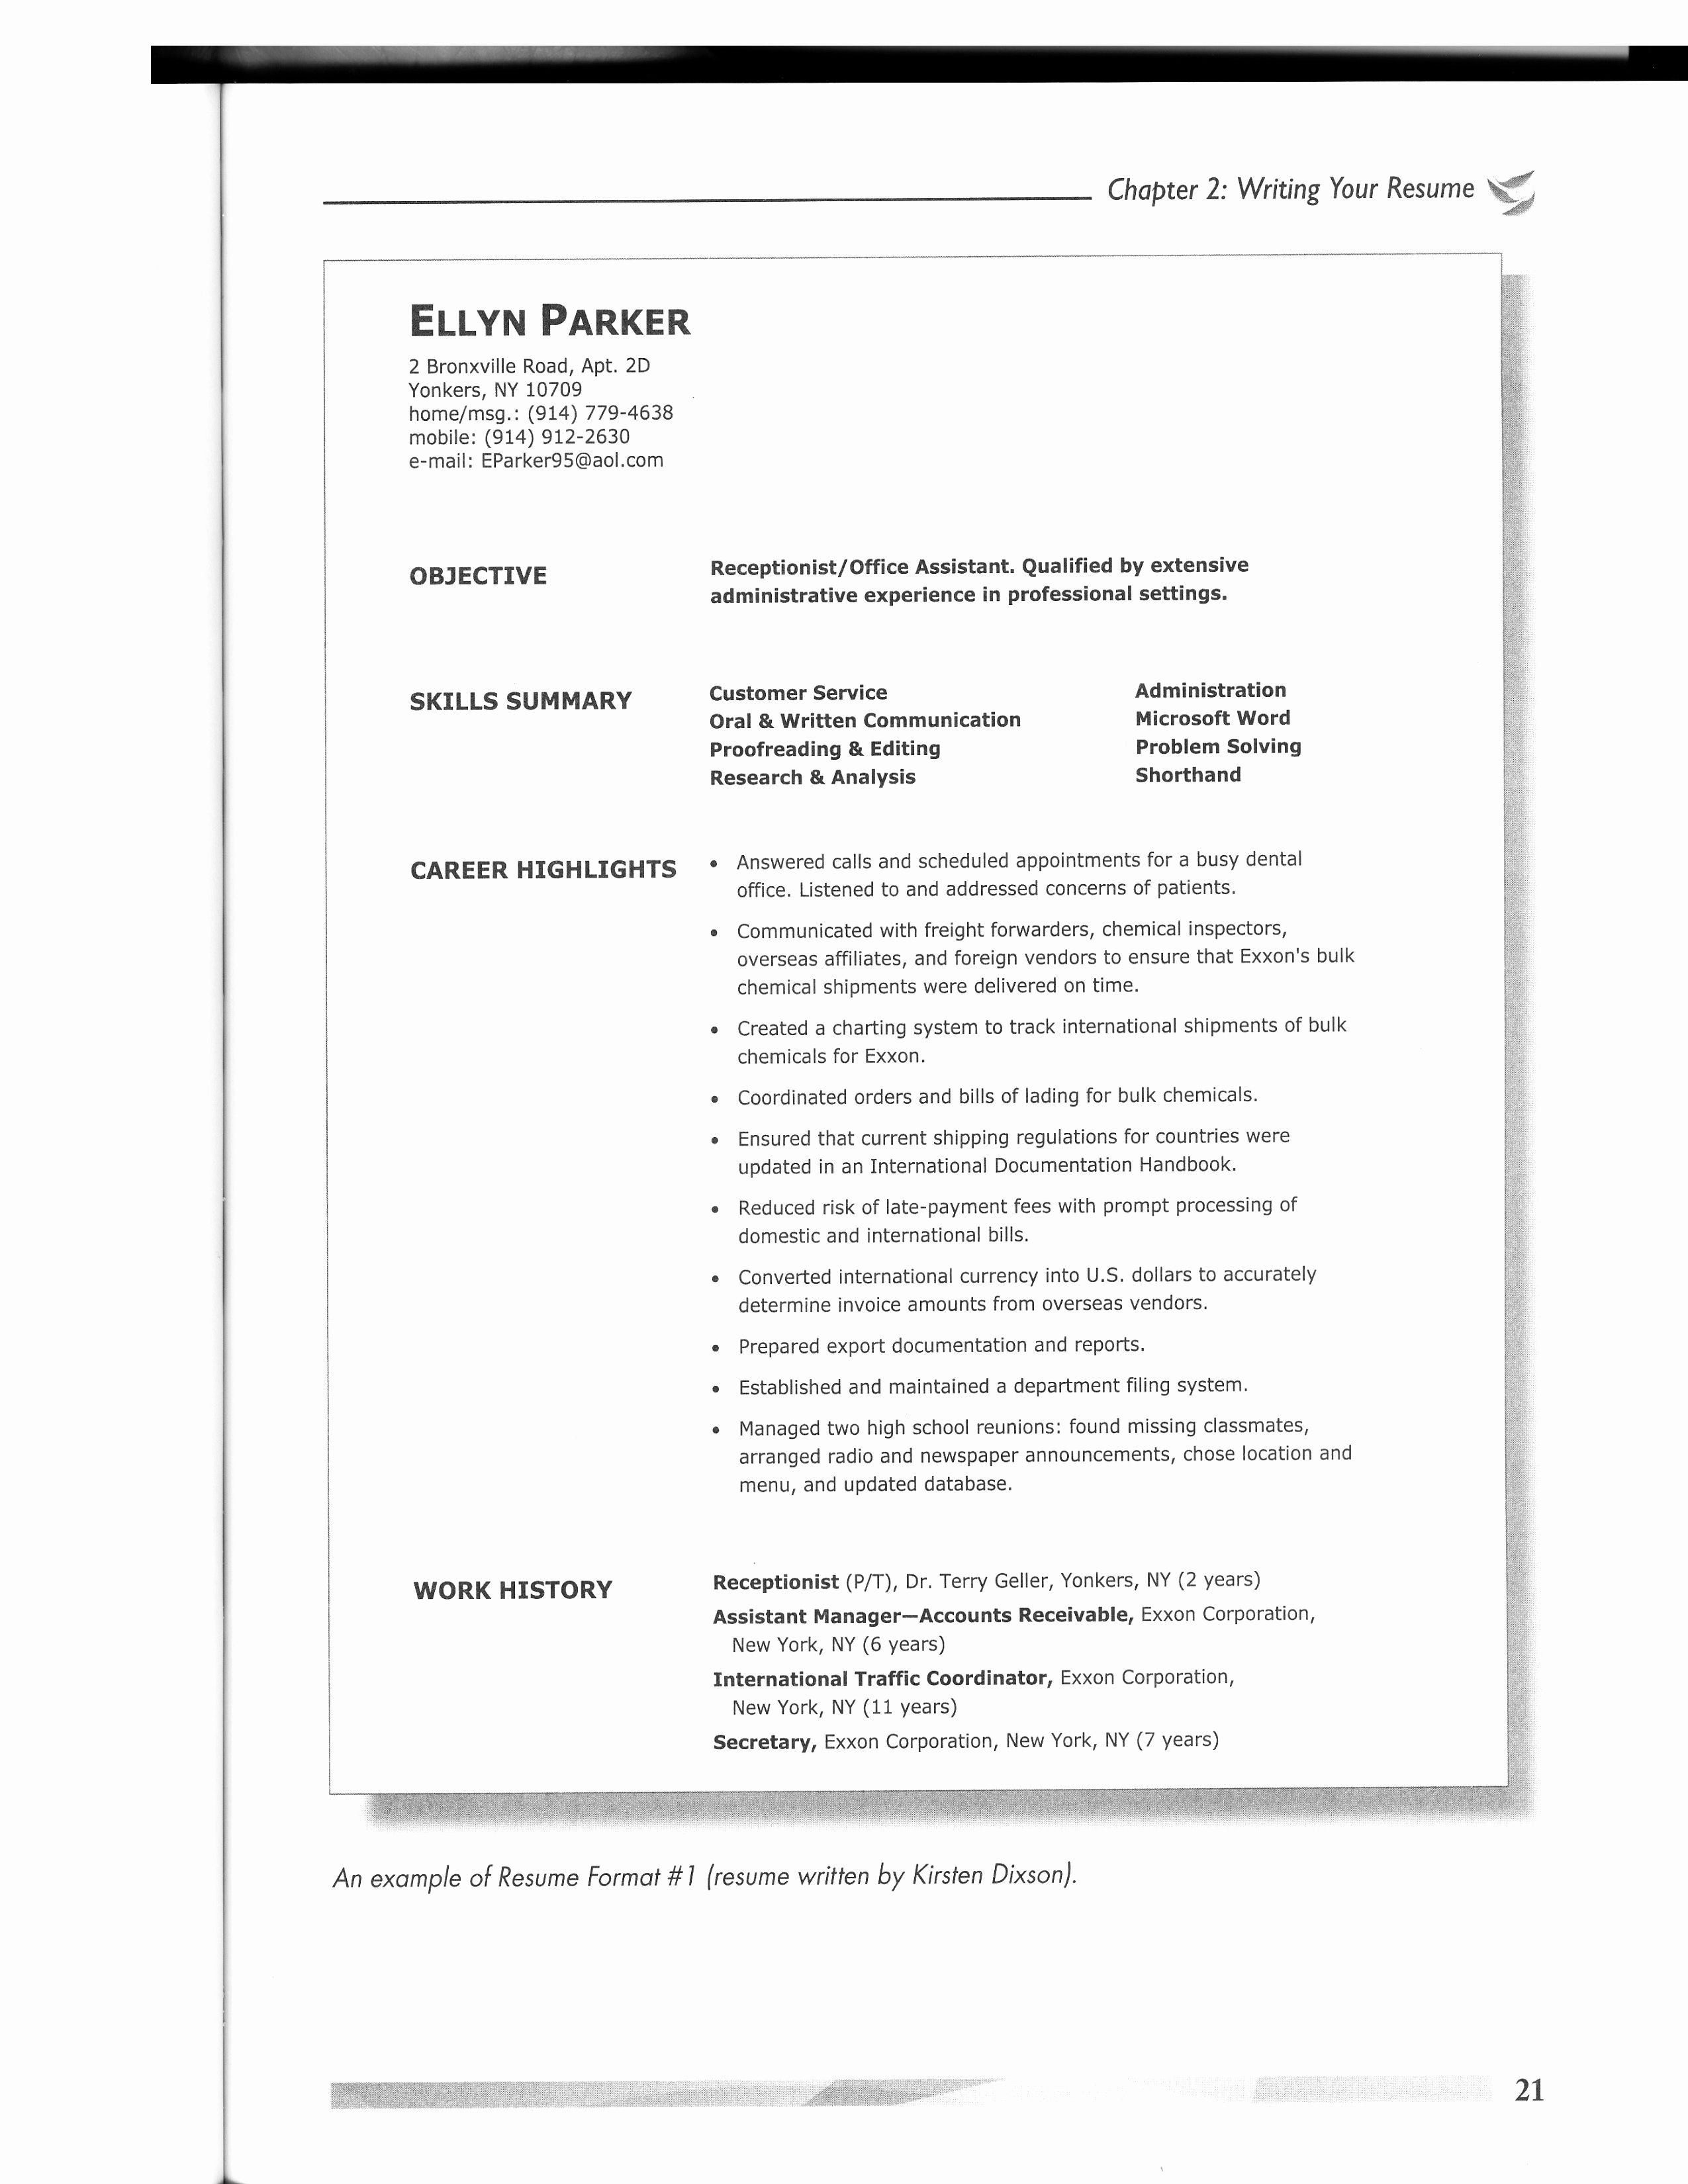 Resume Format Jedegal Resume Job Resume Examples Downloadable Resume Template